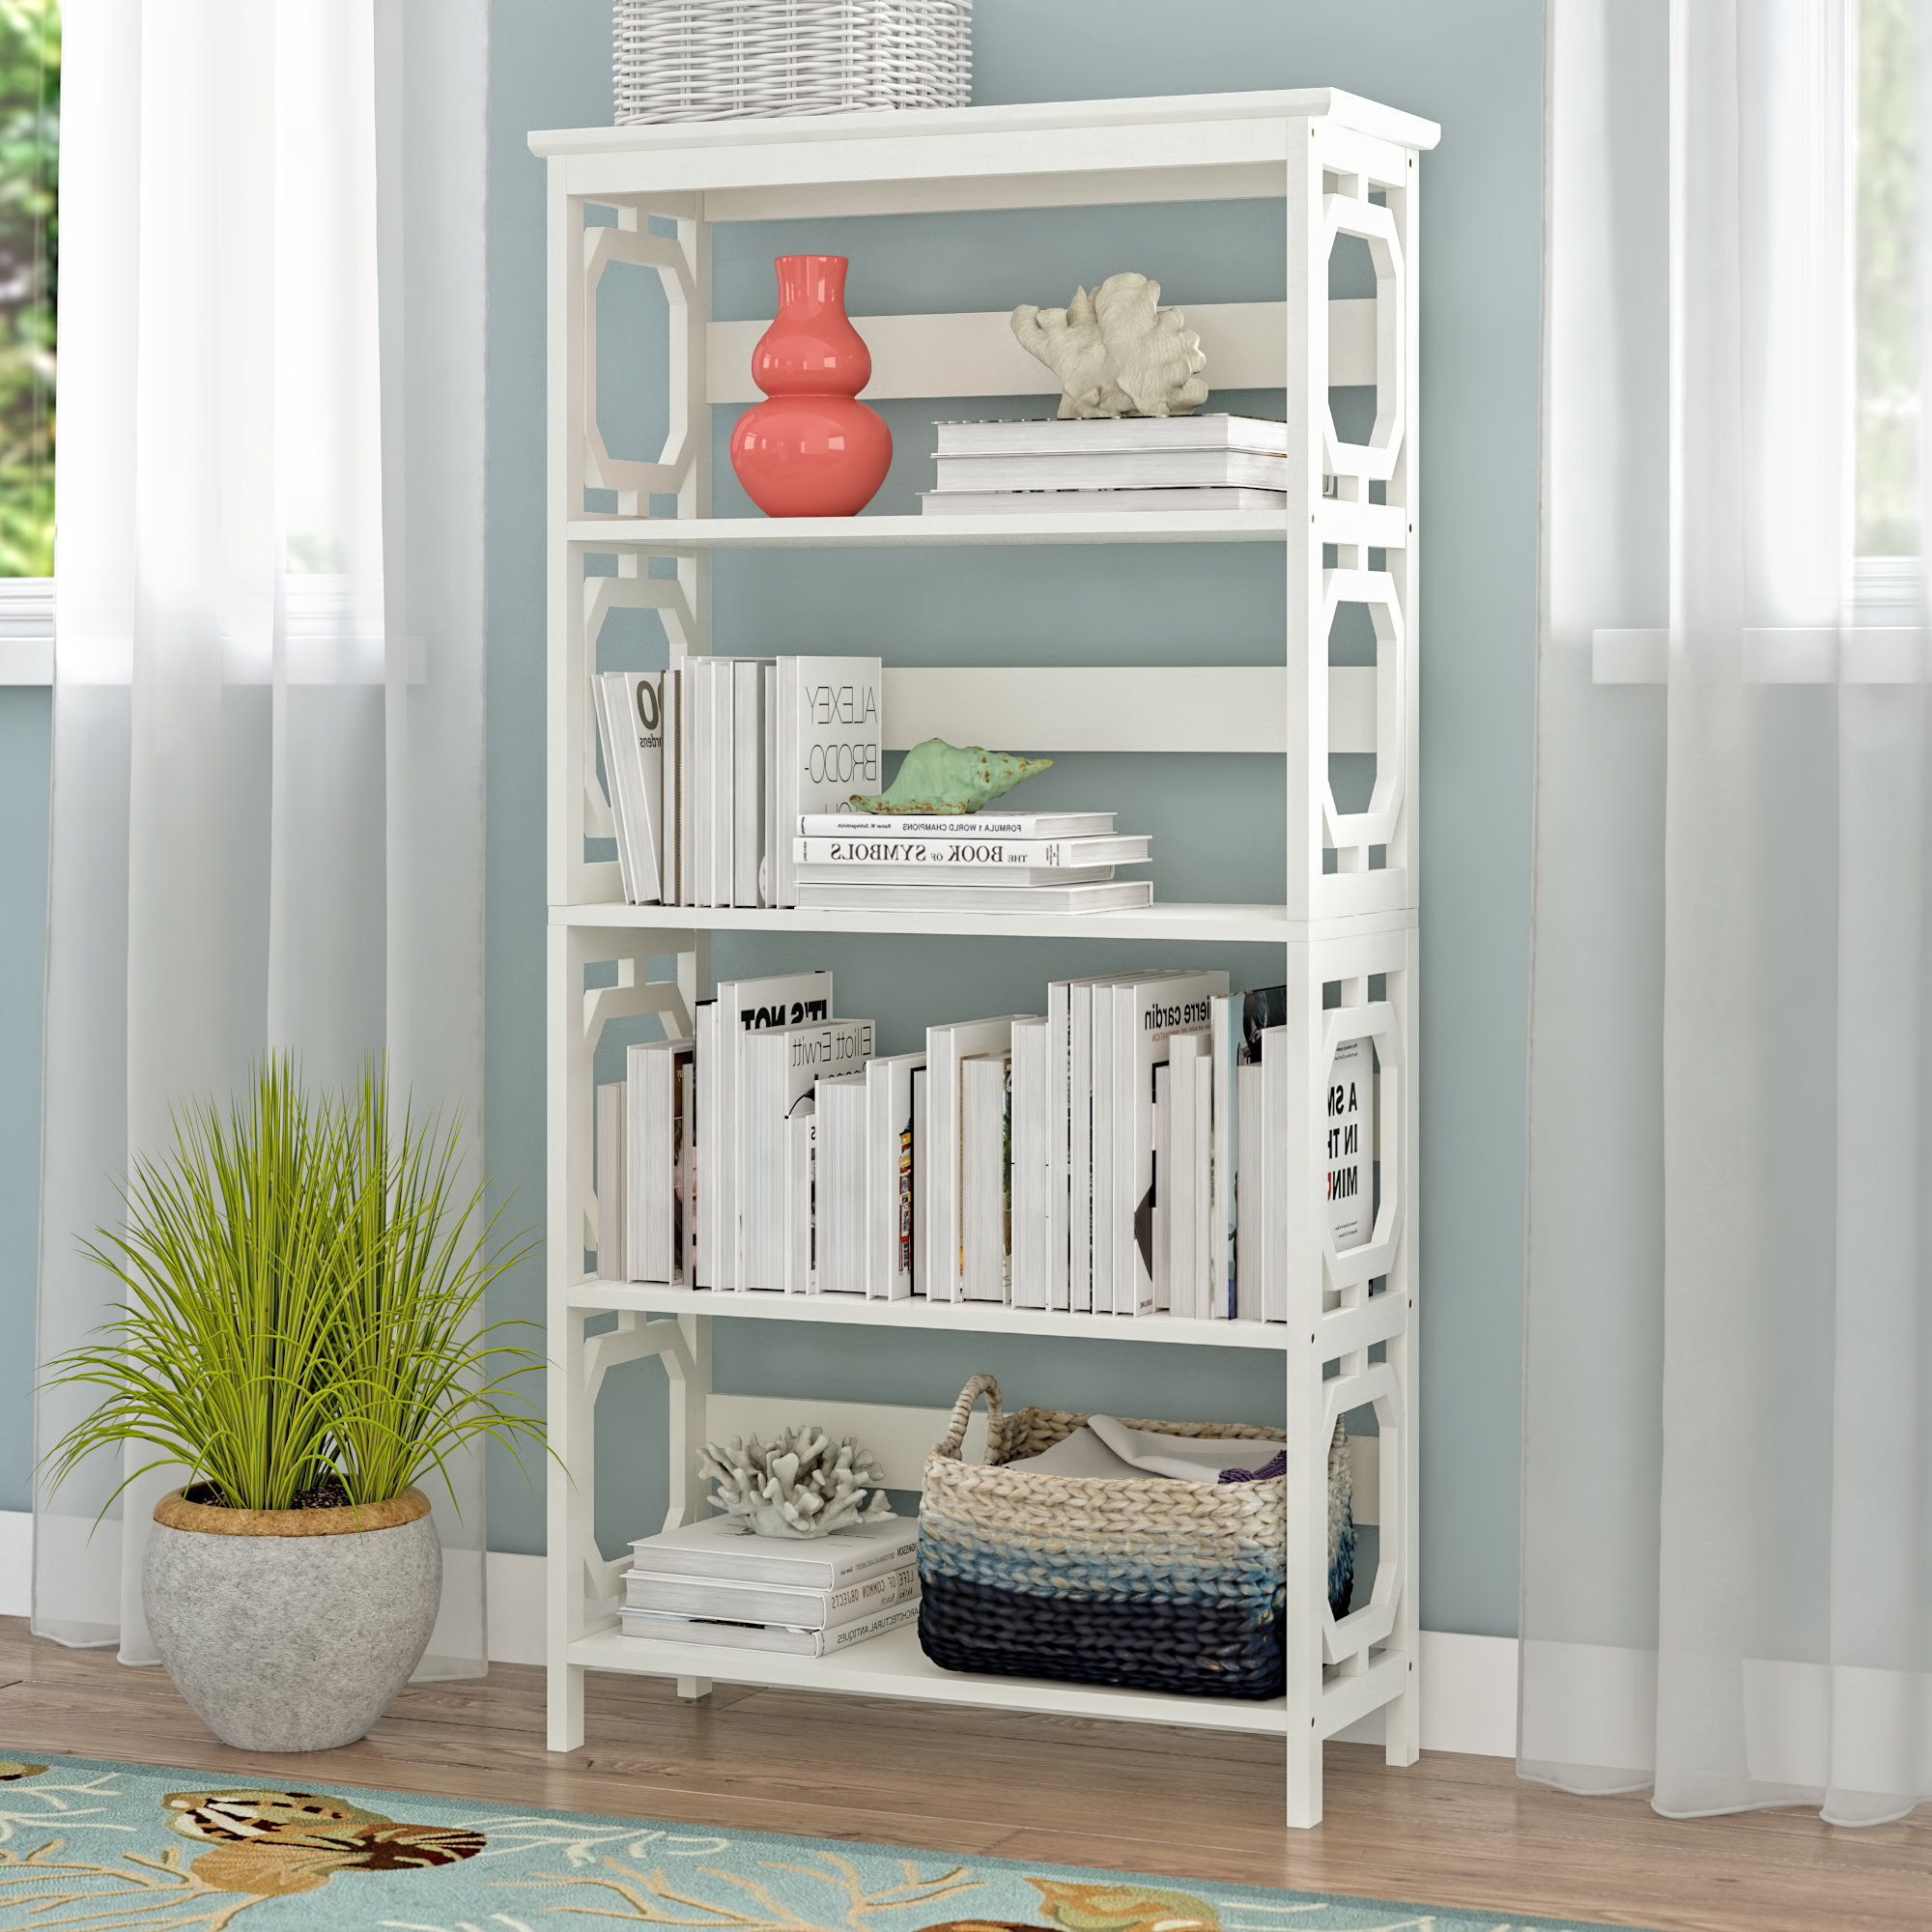 Annabesook Etagere Bookcases Intended For Favorite Beachcrest Home Ardenvor Etagere Standard Bookcase & Reviews (View 3 of 20)